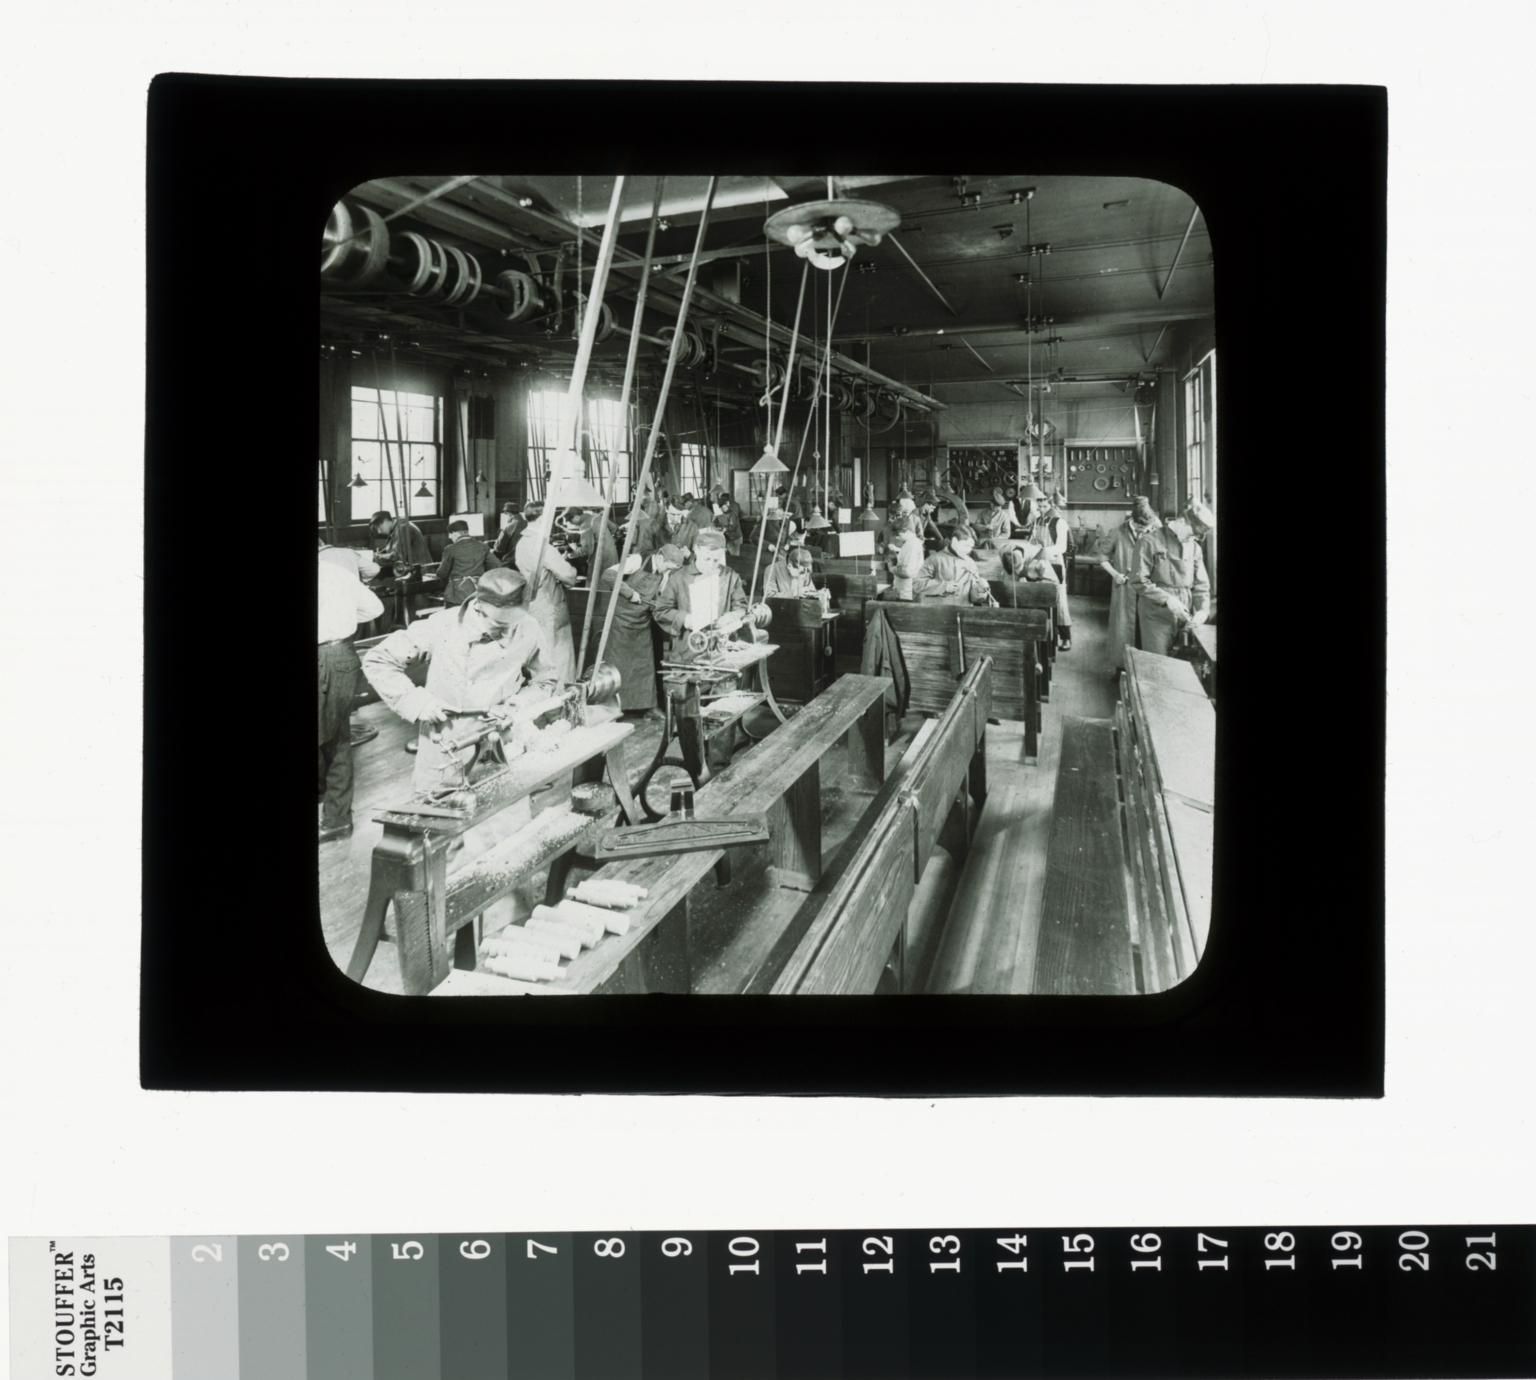 Lathe operation, Department of Manual Training, Rochester Athenaeum and Mechanics Institute